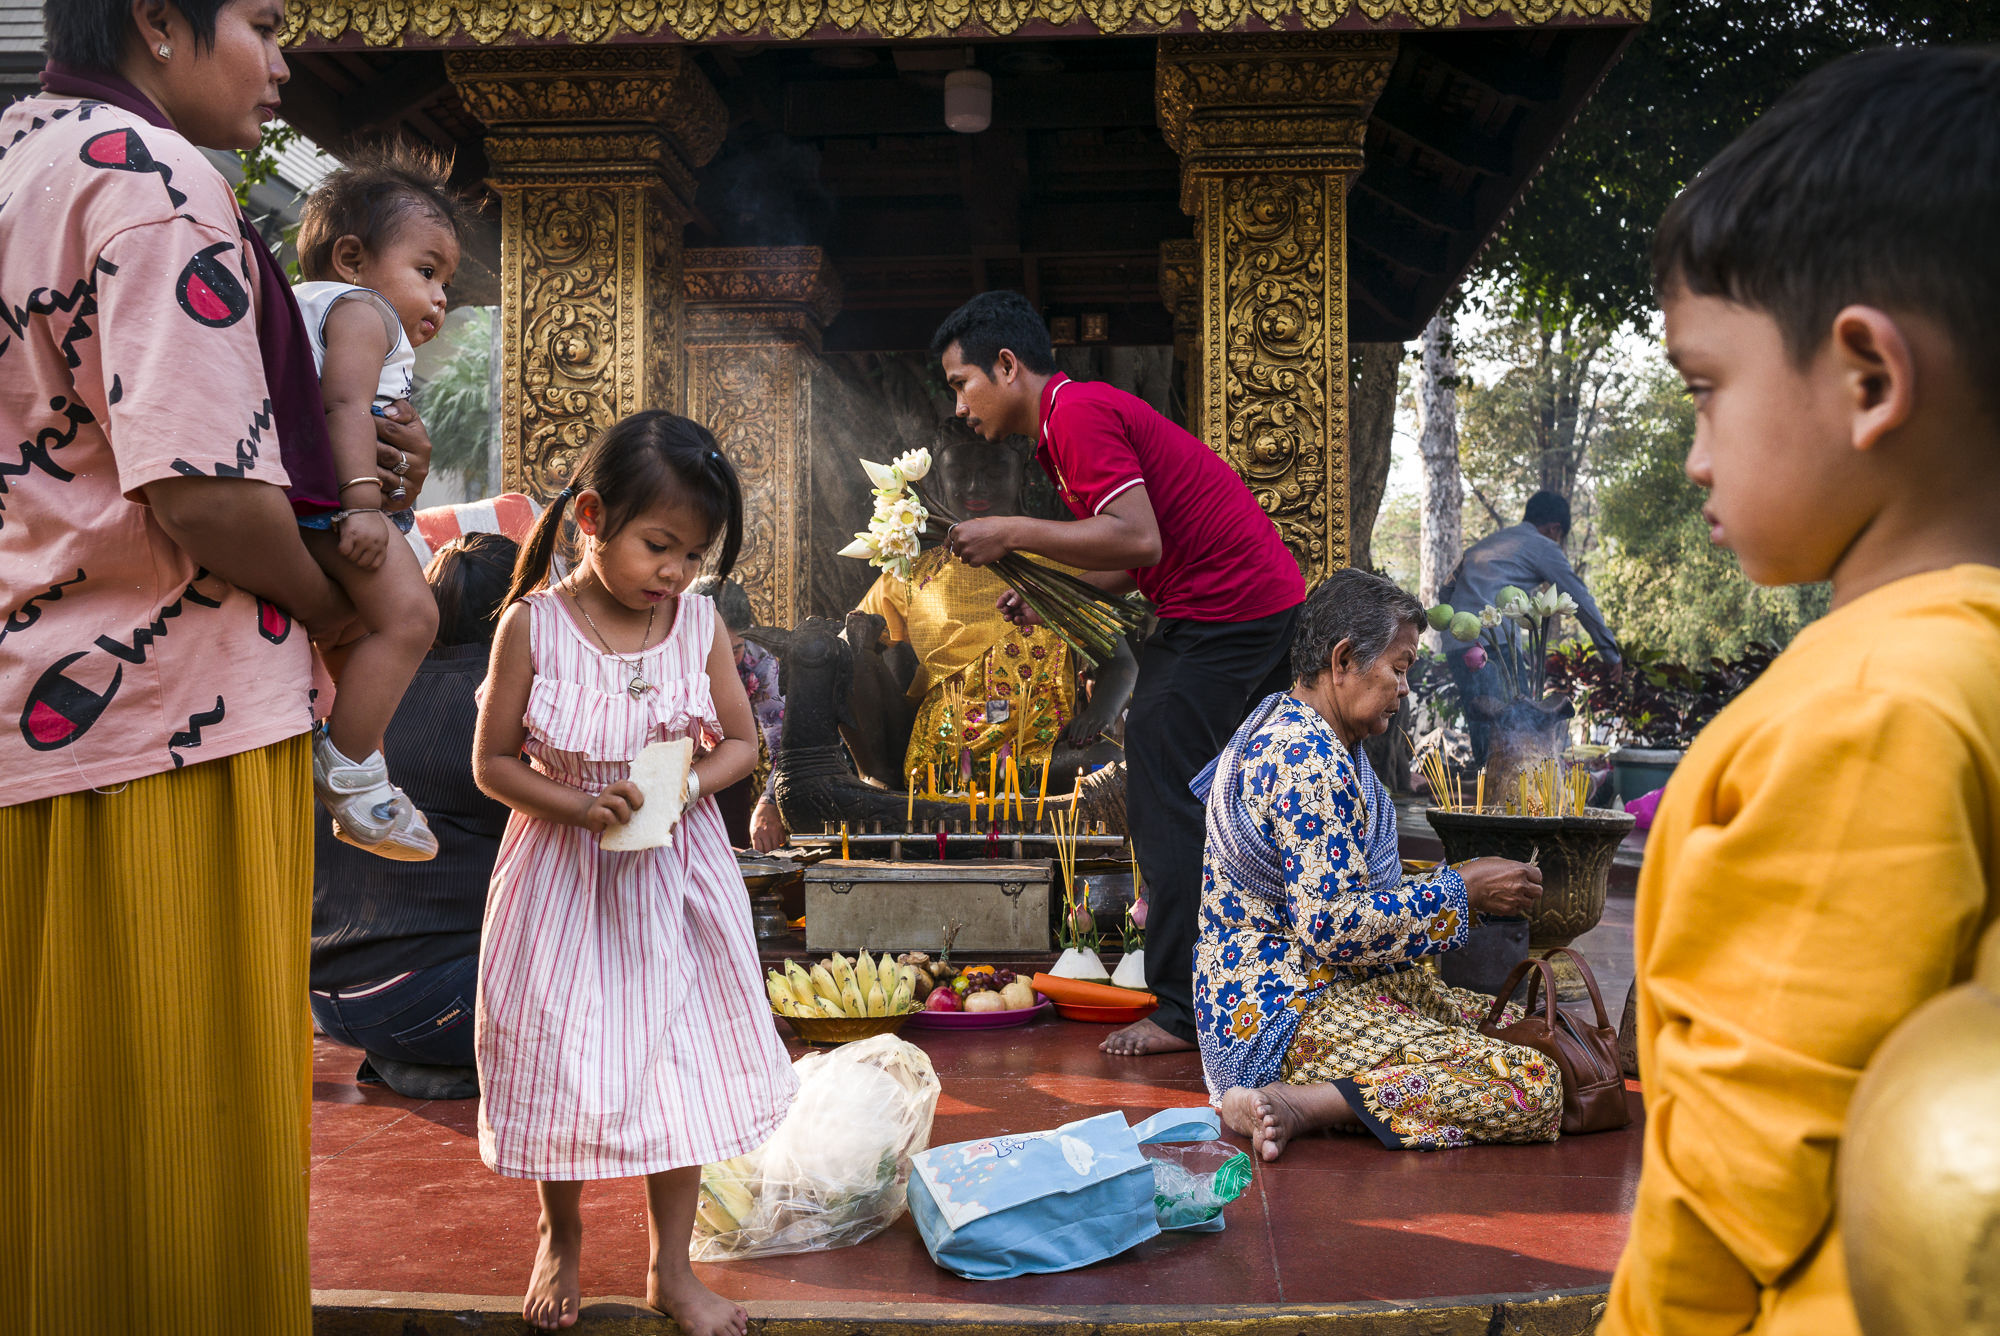 street color photograph of people at a Buddhist temple shot in Siem Reap, Cambodia by Florian E. J. Lang